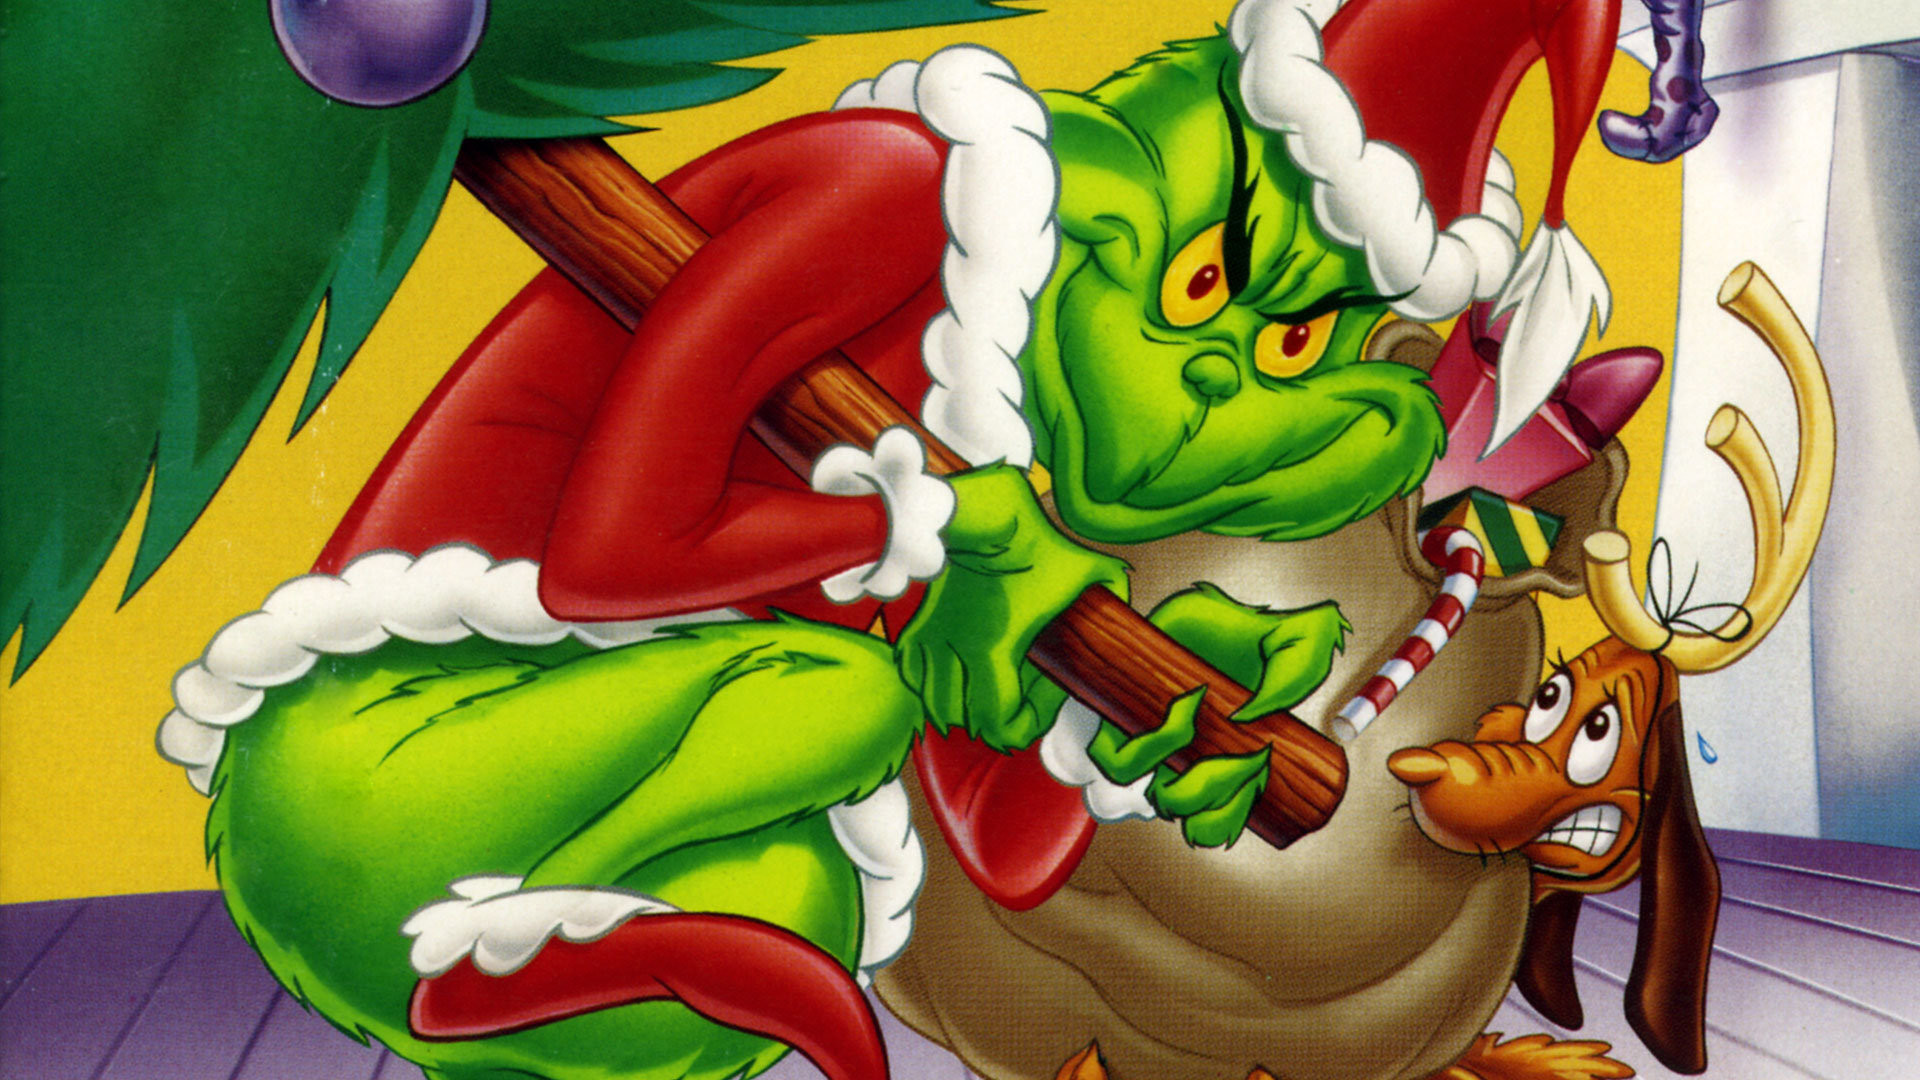 lot But the Grinch who lived just North of Whoville DID NOT 1920x1080